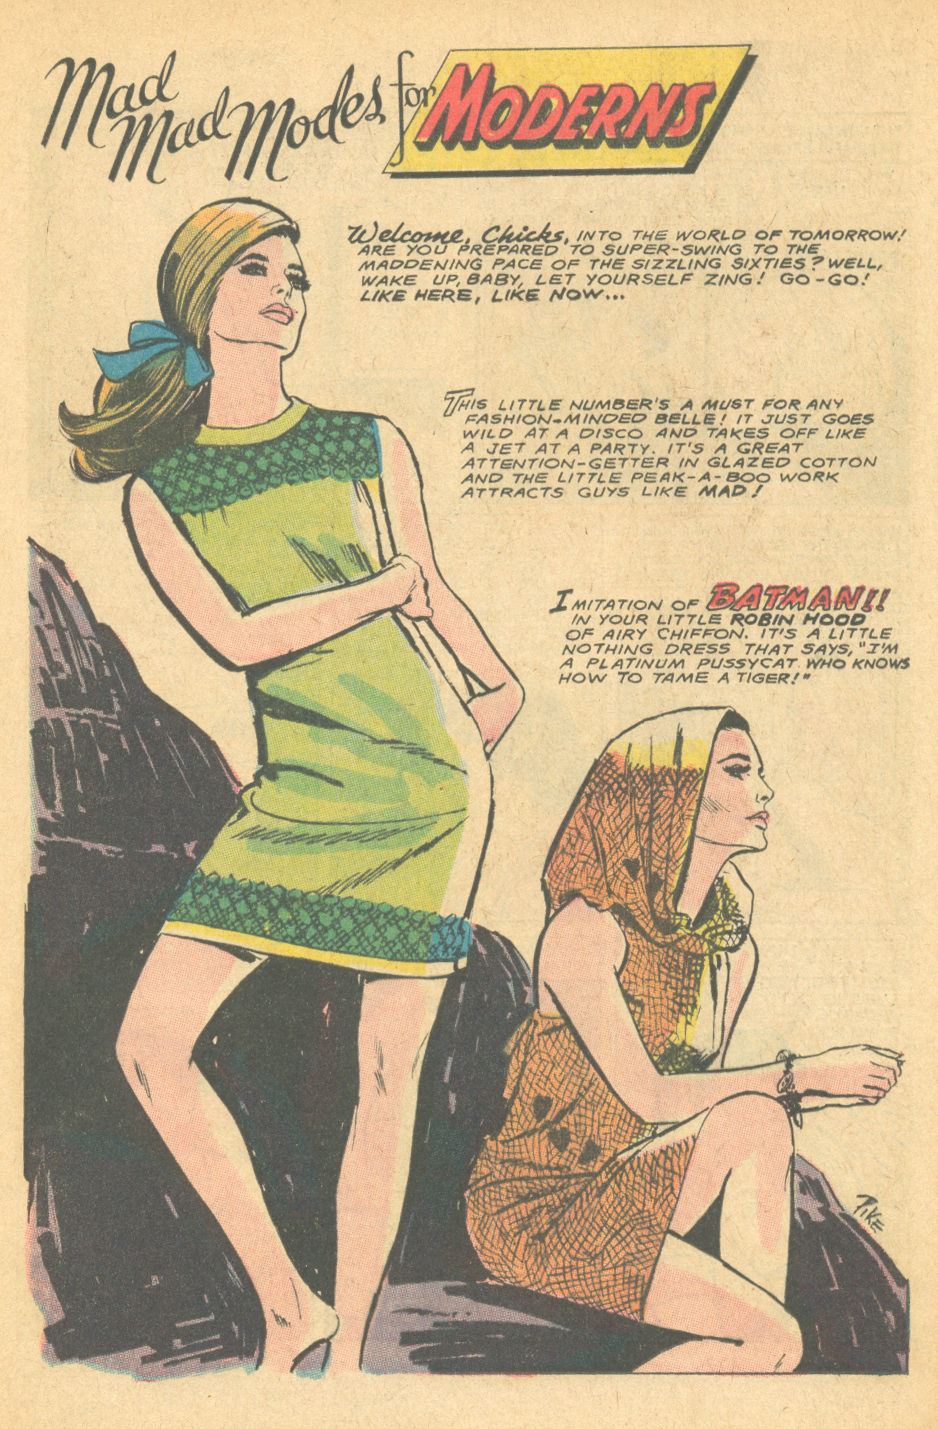 It isn't every day that a romance comic fashion spread evokes a superhero!